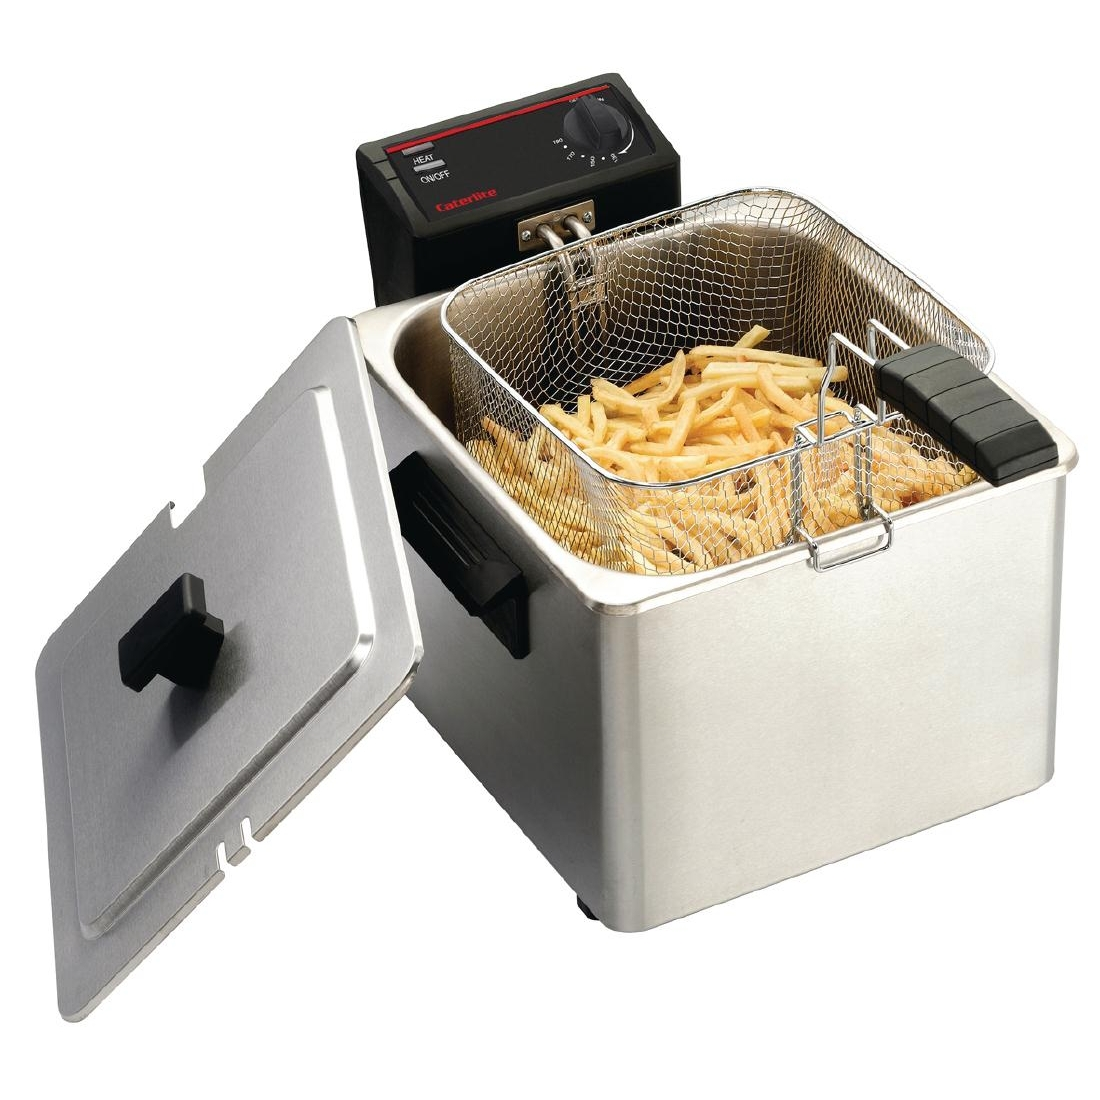 Friteuse de comptoir simple Caterlite peu intensive 8L